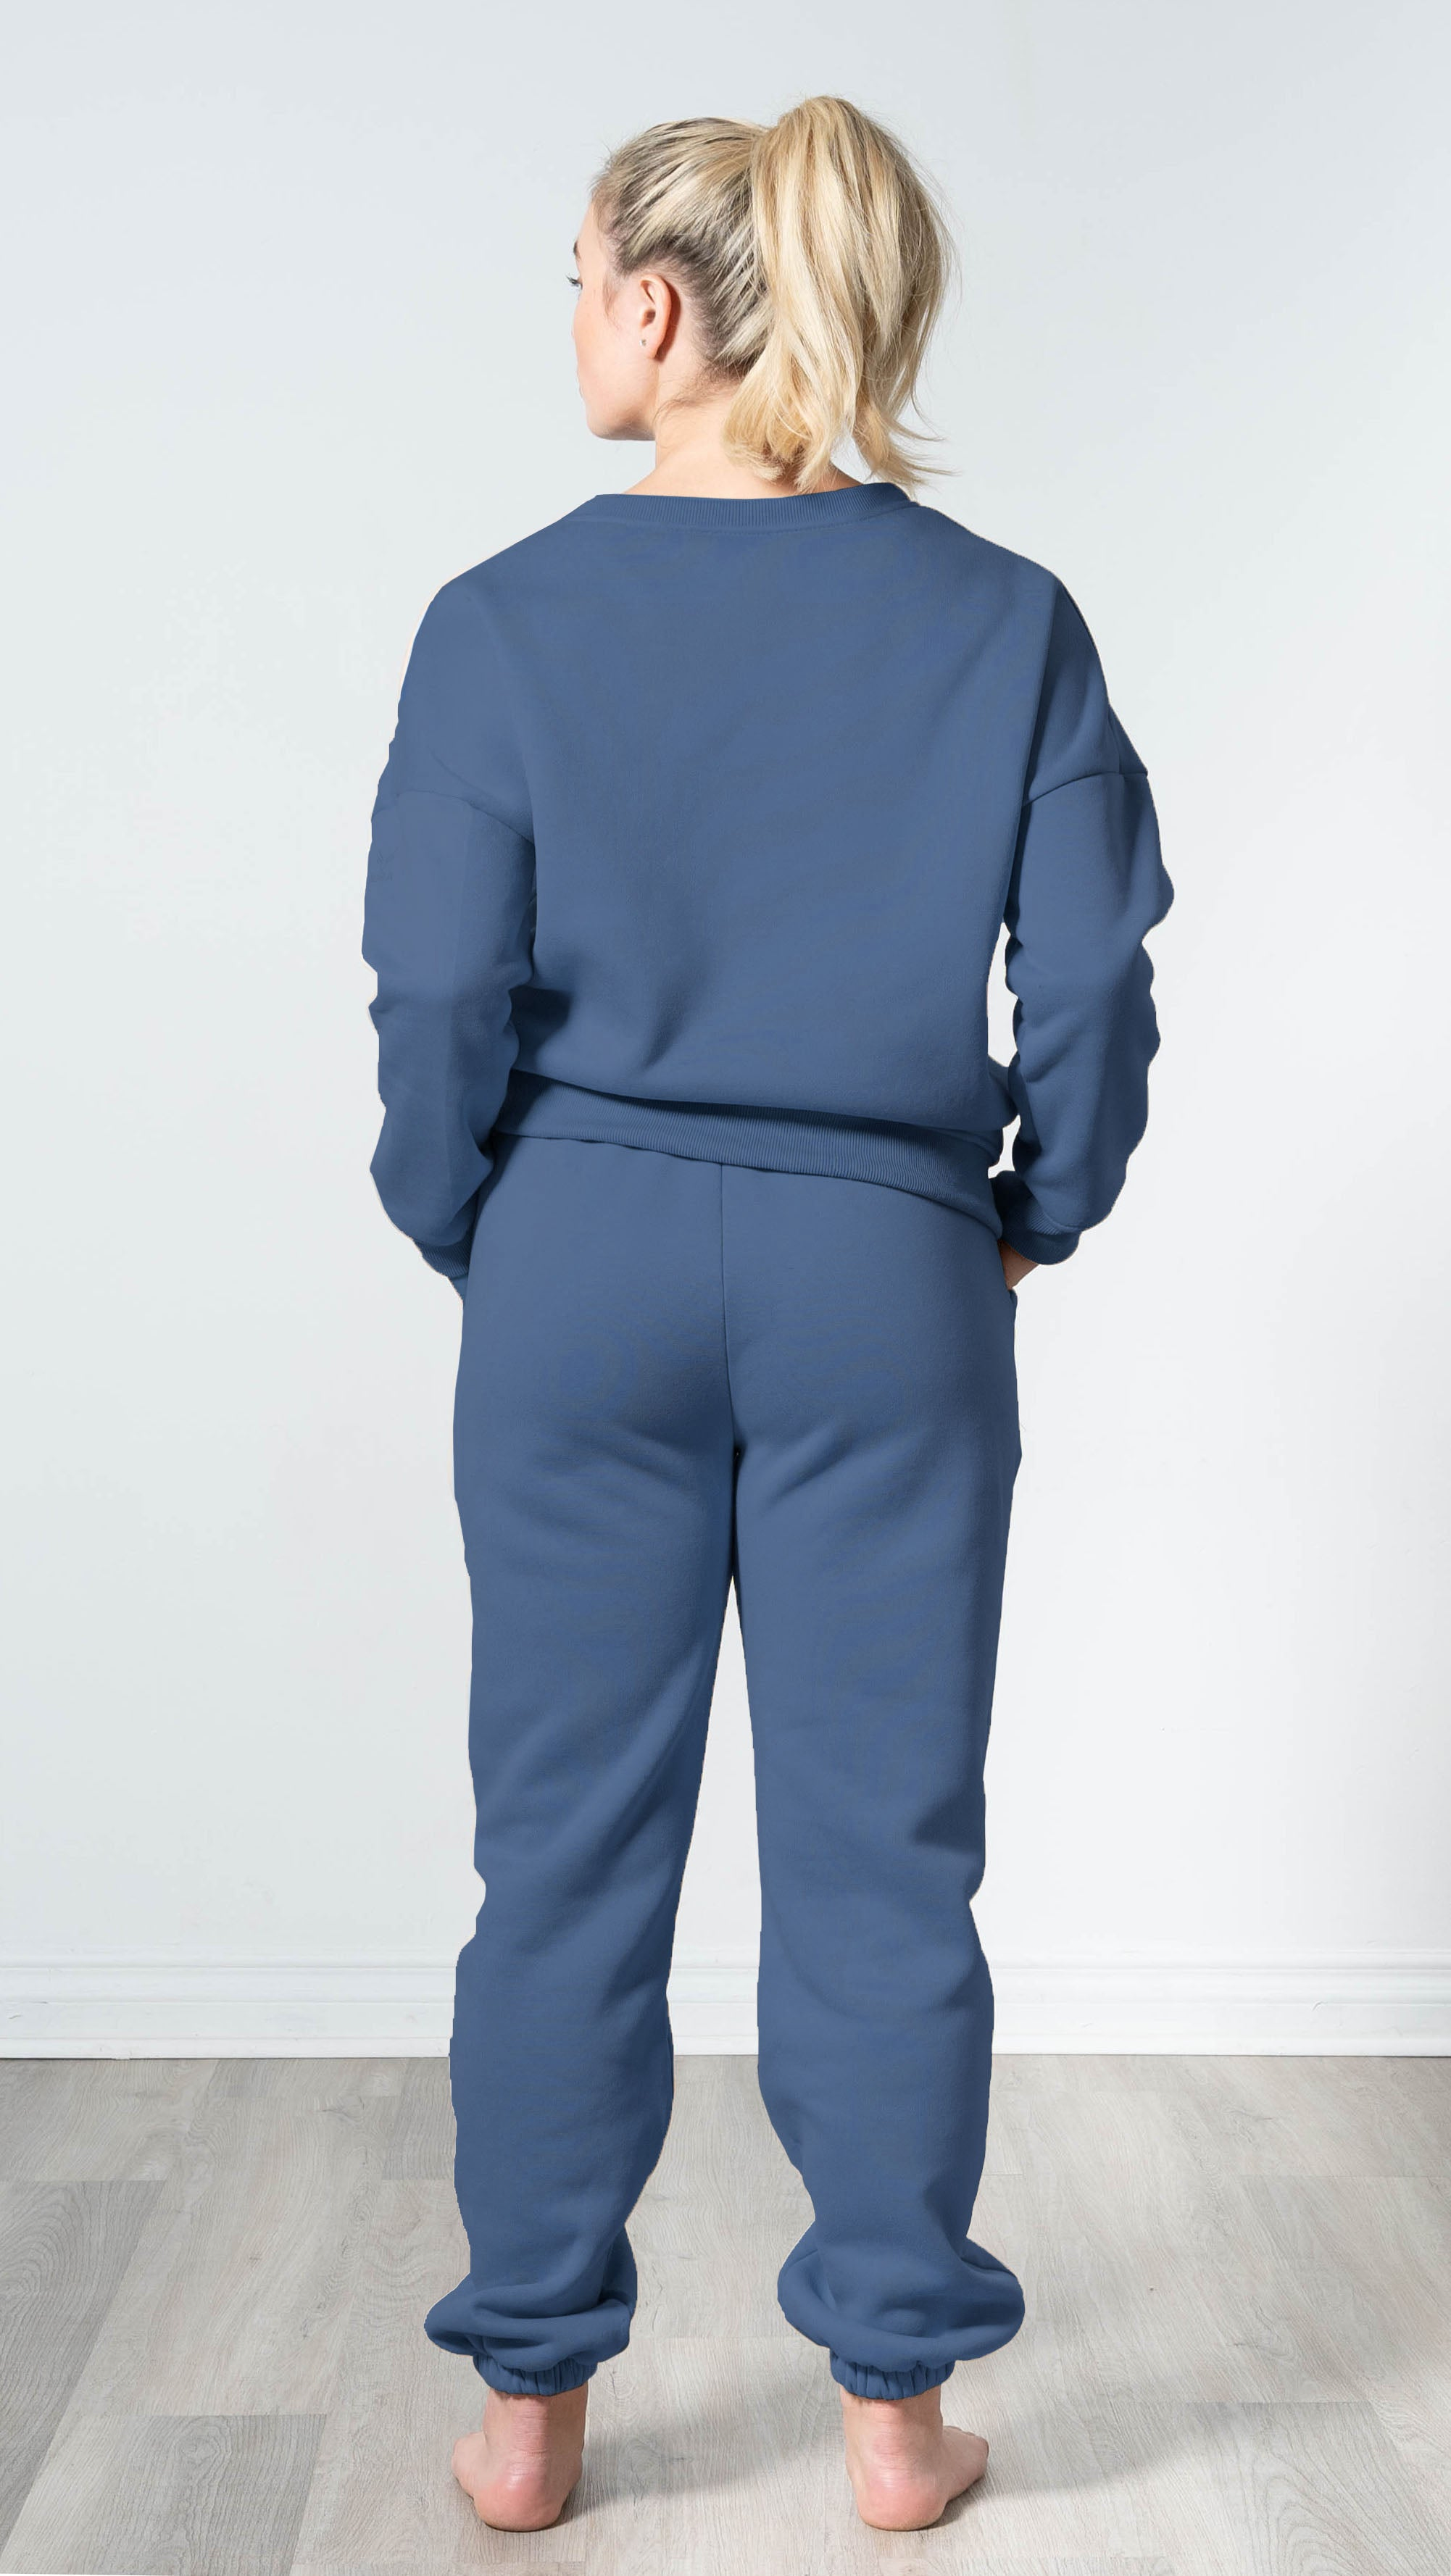 Snuggle'up Smoky Blue Oversized Sweatpants